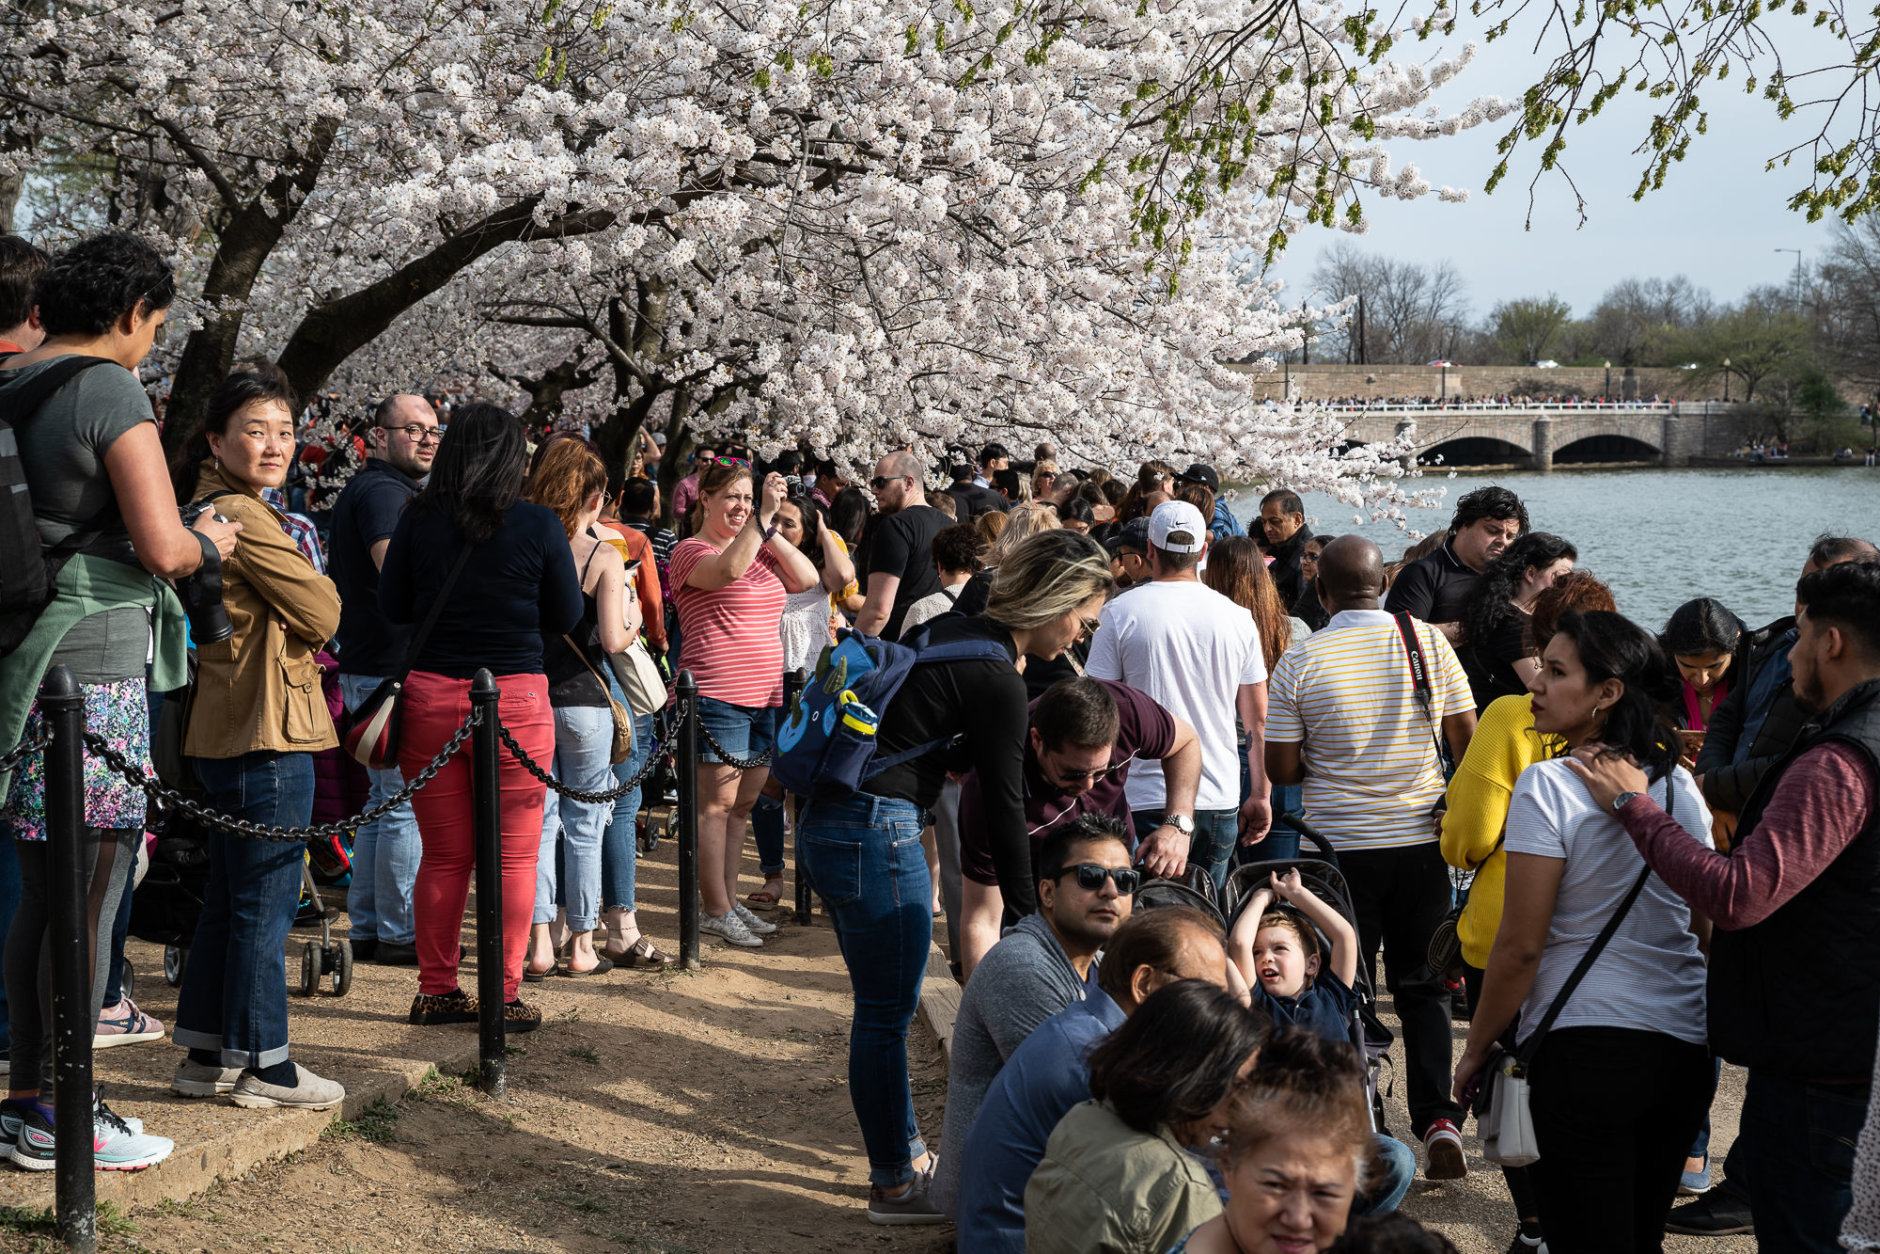 Tourists compete for a glimpse of the cherry blossoms along the Tidal Basin on March 30. On what may turn out to be the busiest day for blossom tourism, parts of the shore walk along Maine Avenue, SW were effectively standing room only. (WTOP/Alejandro Alvarez)